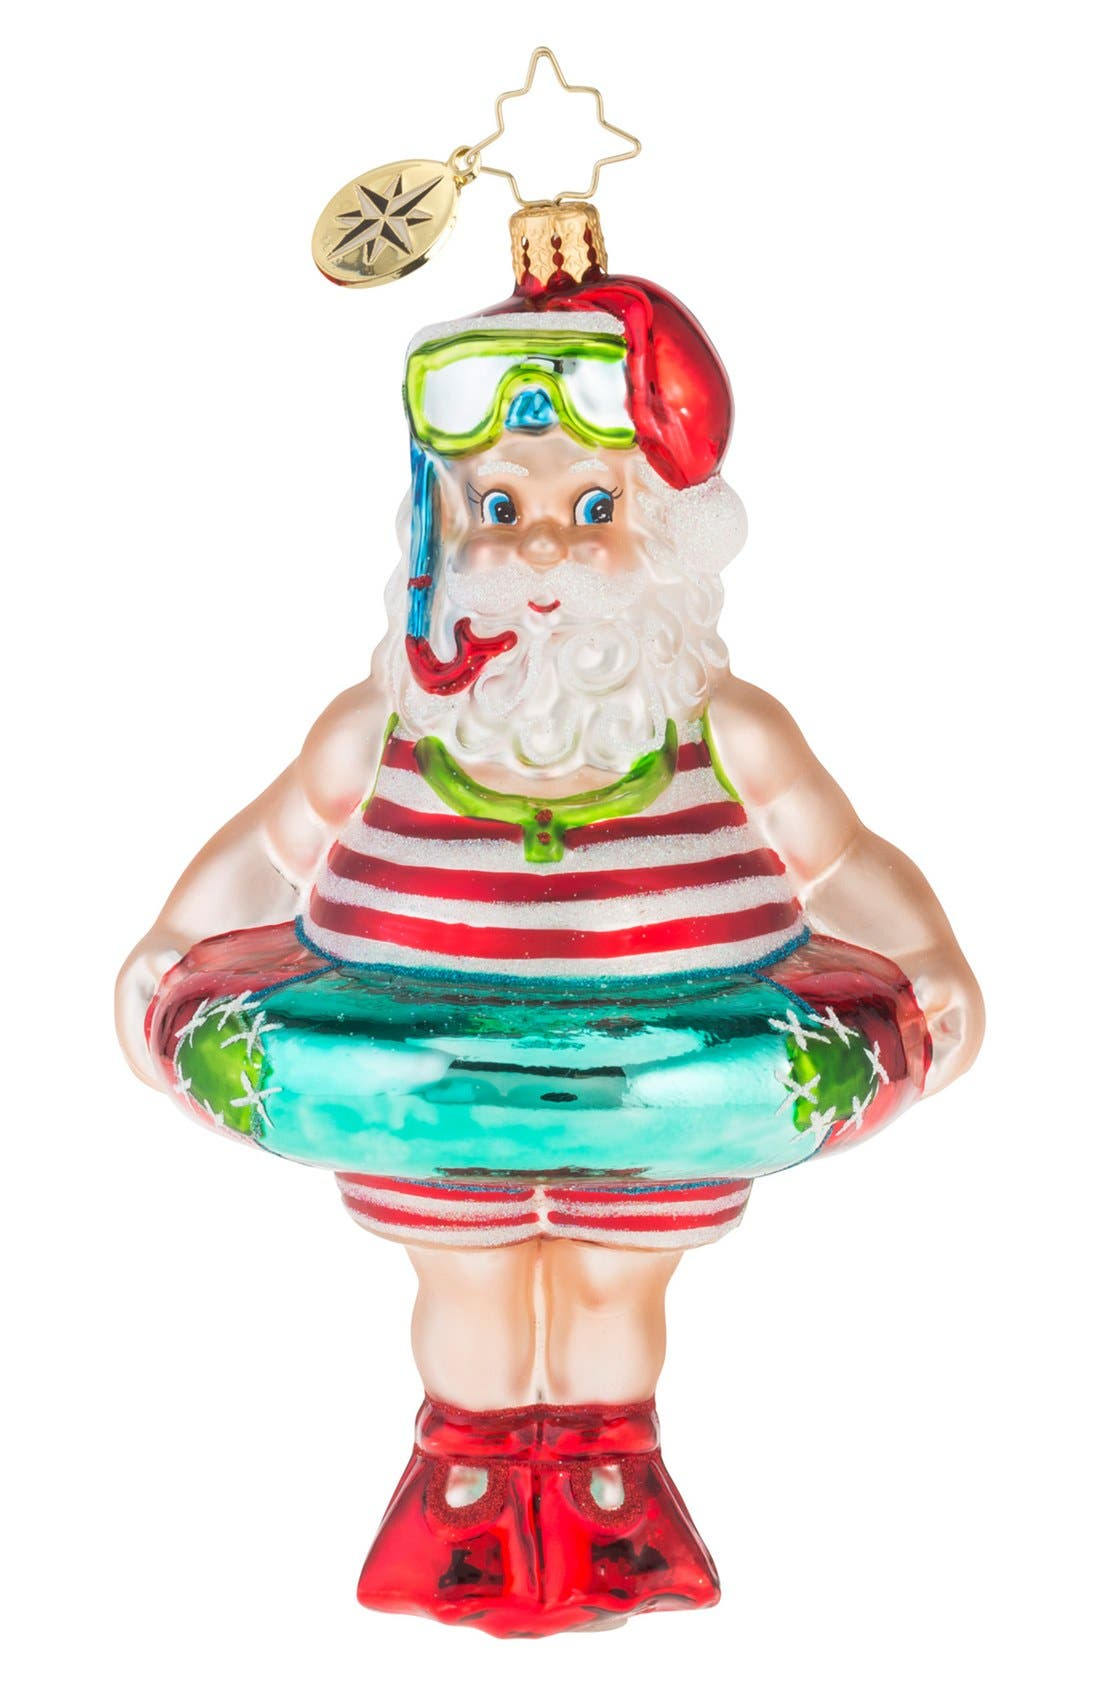 'Splish Splash' Bathing Suit Santa Ornament,                             Main thumbnail 1, color,                             600